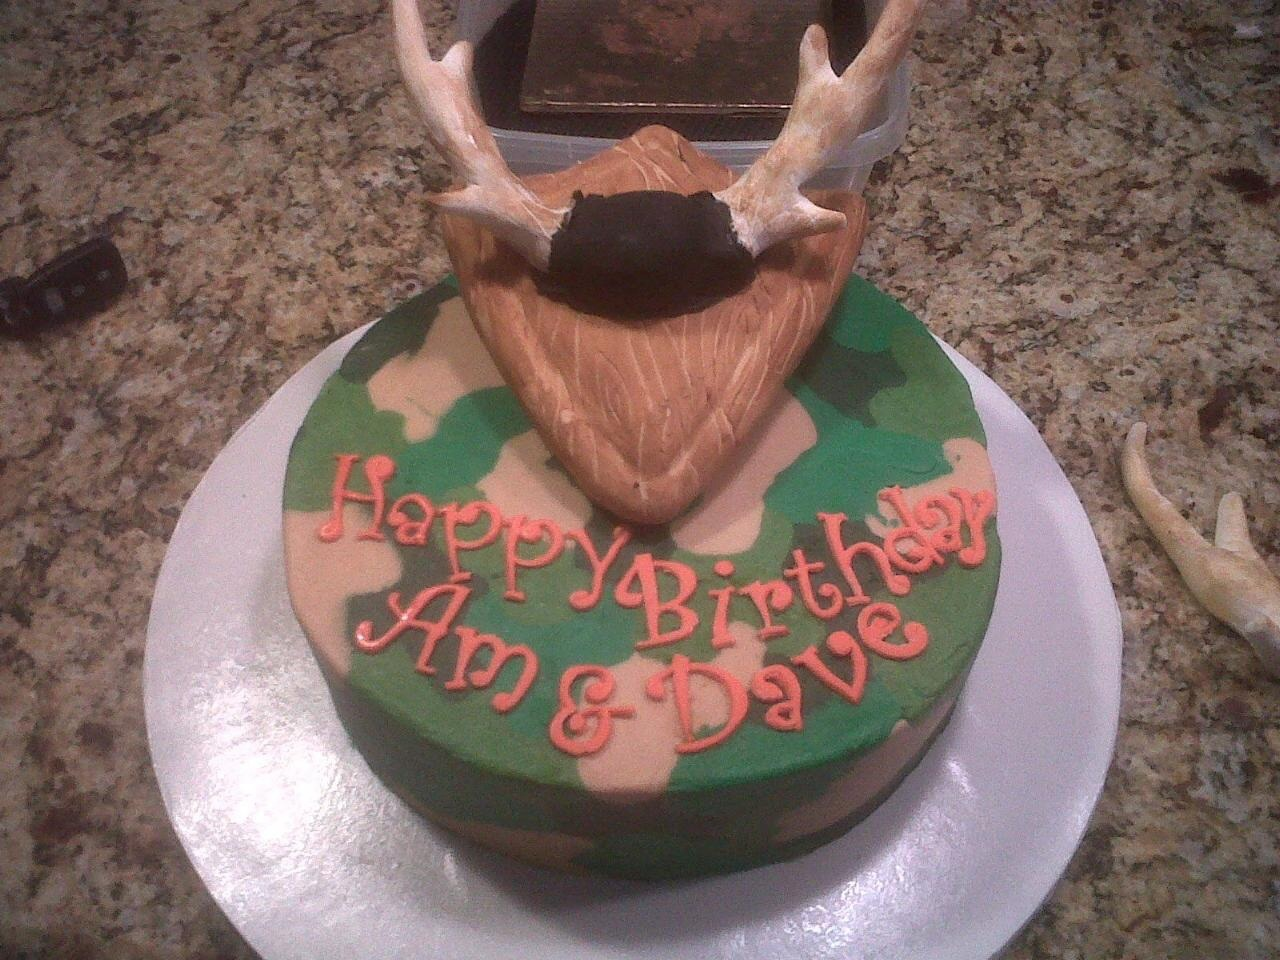 Camo cake done in buttercream technique learned on cc Rice Krispie plaque covered in fondant with gum paste antlers